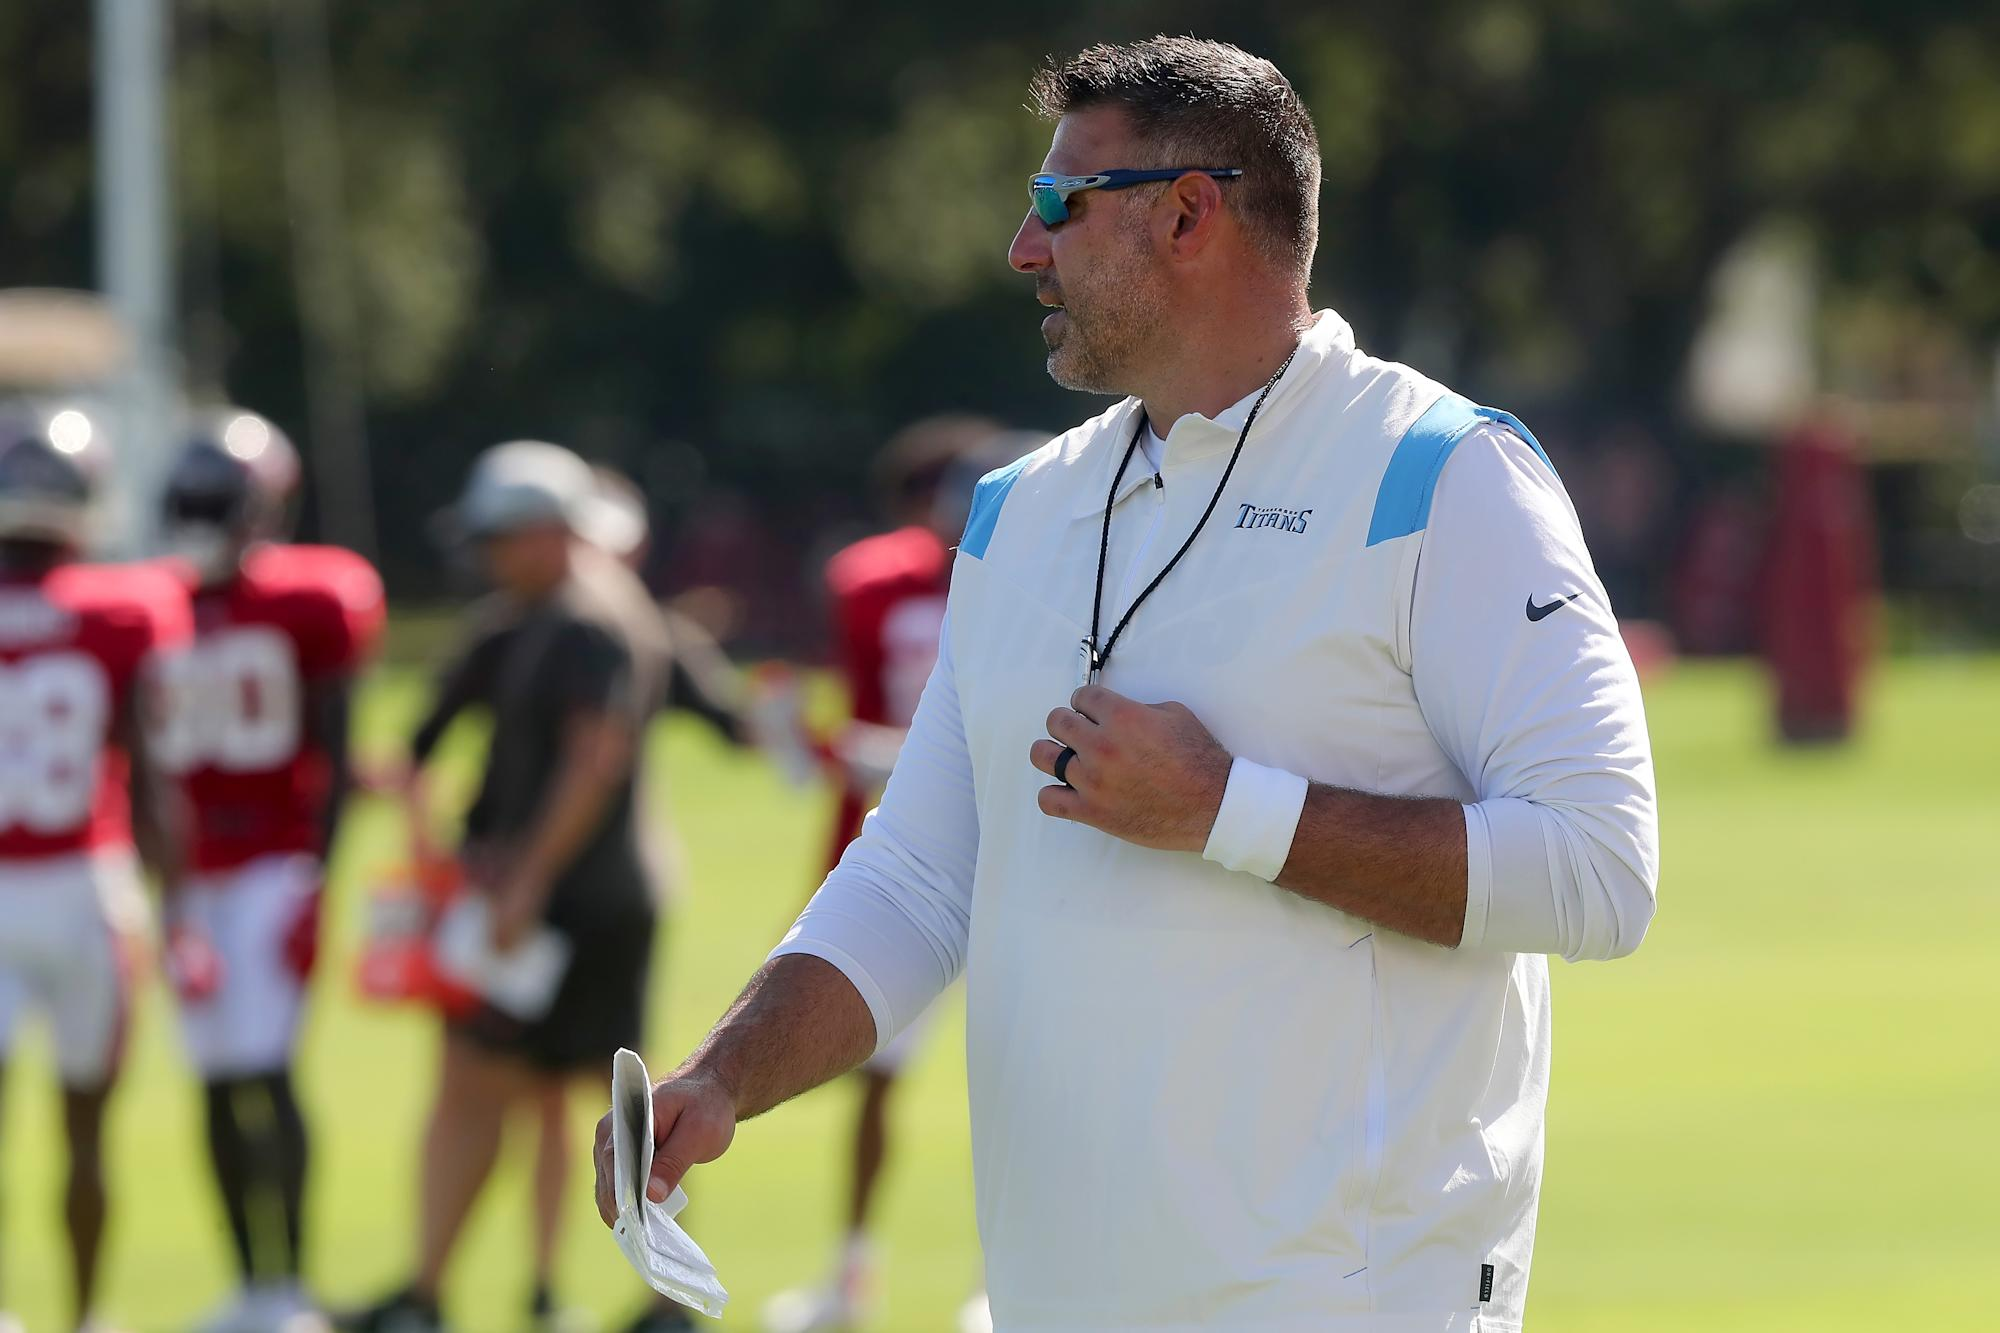 Titans coach Mike Vrabel tests positive for COVID-19 after joint practices with Buccaneers